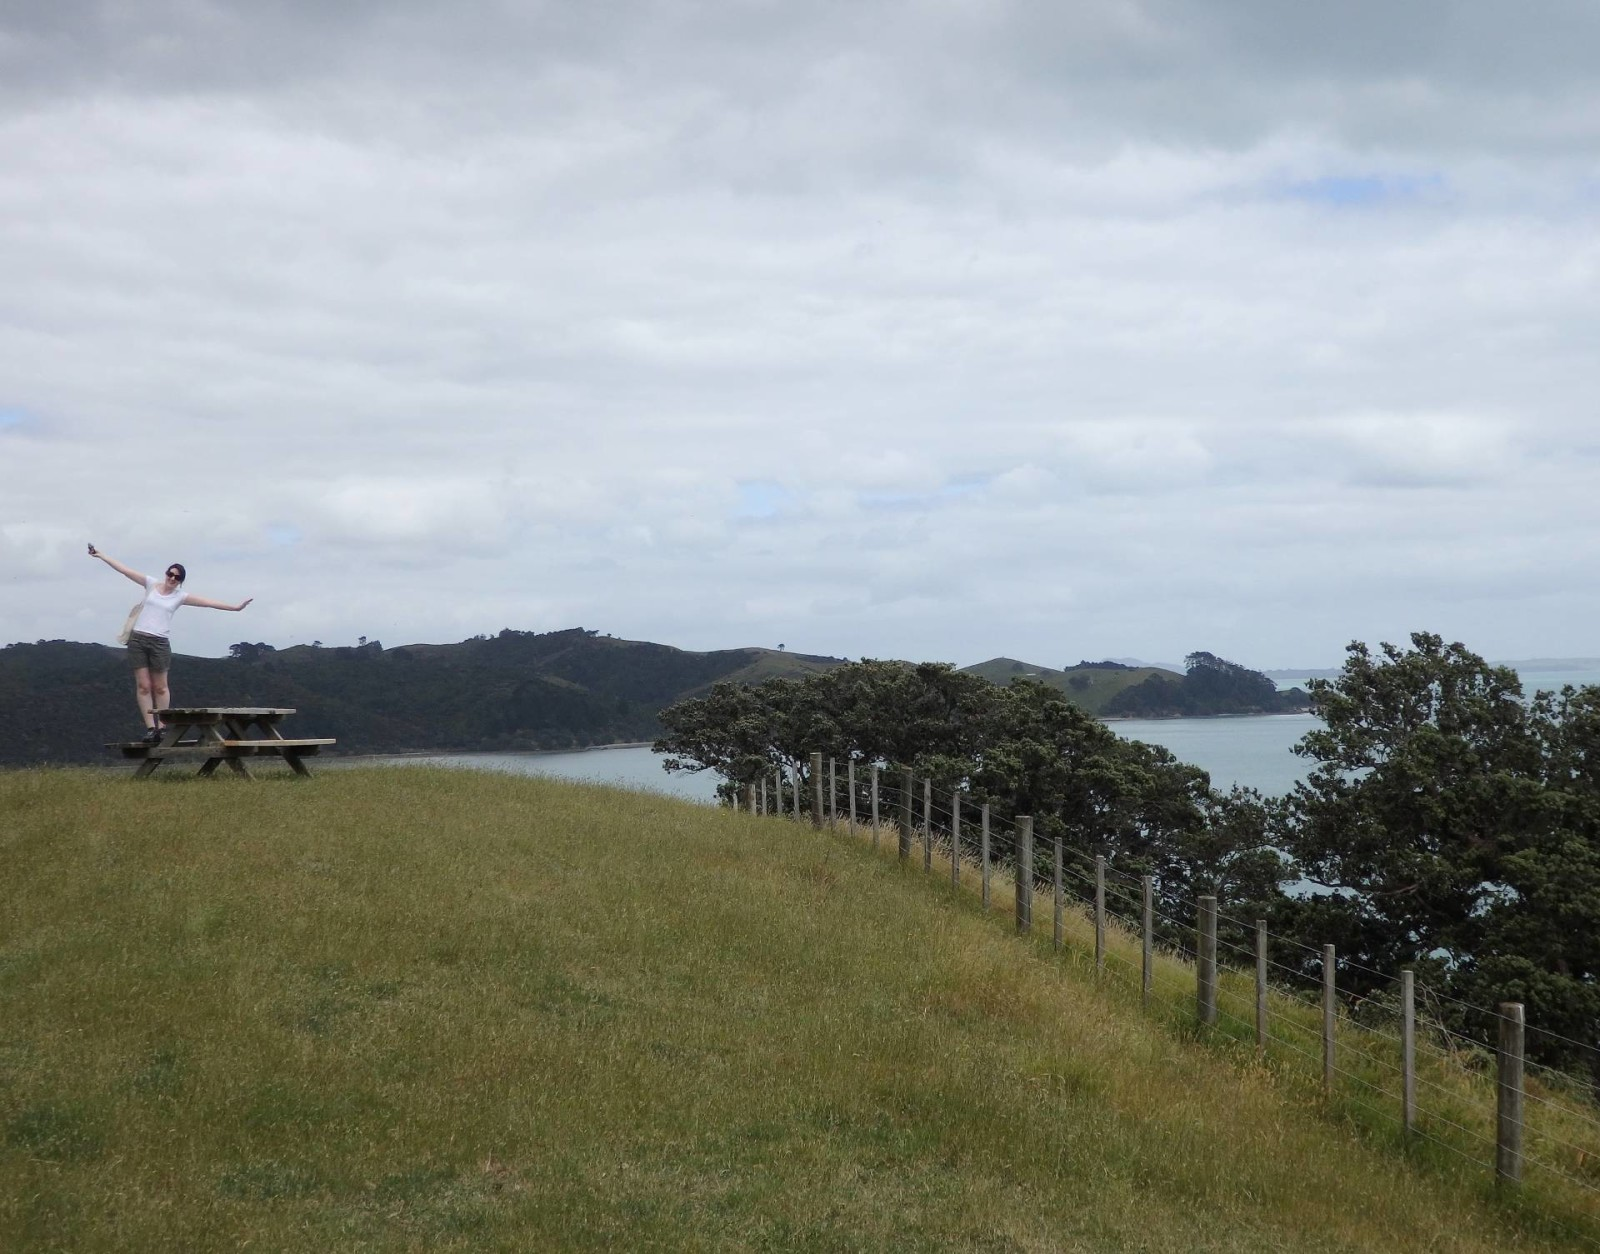 New Zealand Travel Inspiration - Looking for things to do in Auckland City then why not visit the Duder Regional Park in South Auckland which is a super little New Zealand hiking spot with stunning views over the Auckland Gulf. Add this Regional Park to your New Zealand Bucket List.  Click on the link to see more photos and travel tips for Auckland, New Zealand.